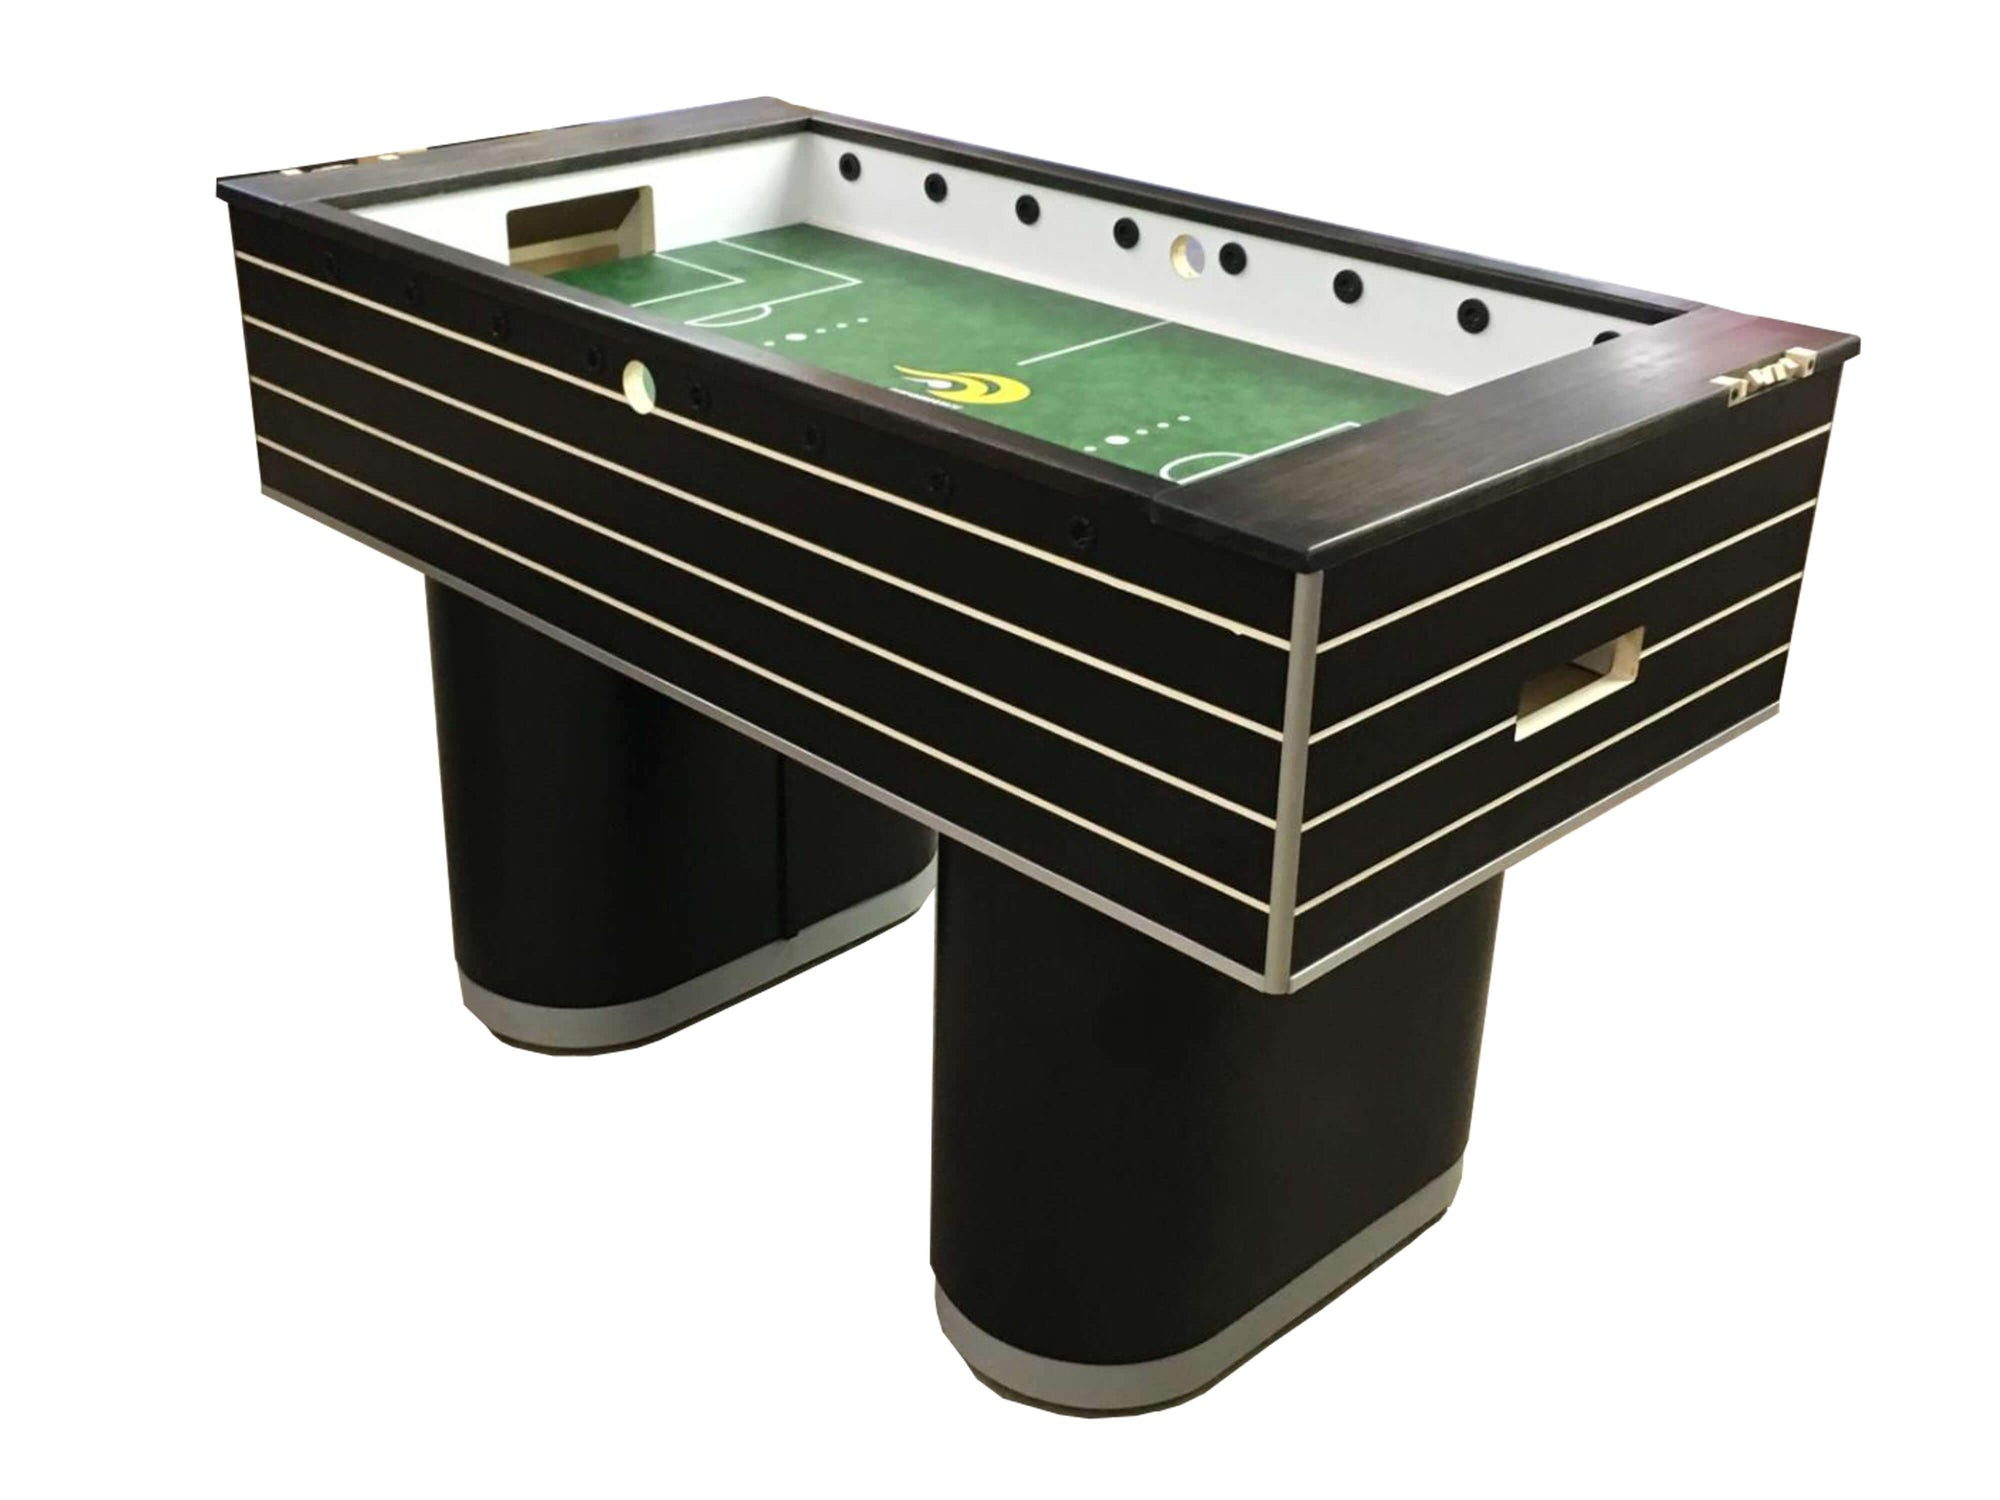 "Performance Games Sure Shot RWL Tubular Legs Foosball Table 56"" - Gaming Blaze"